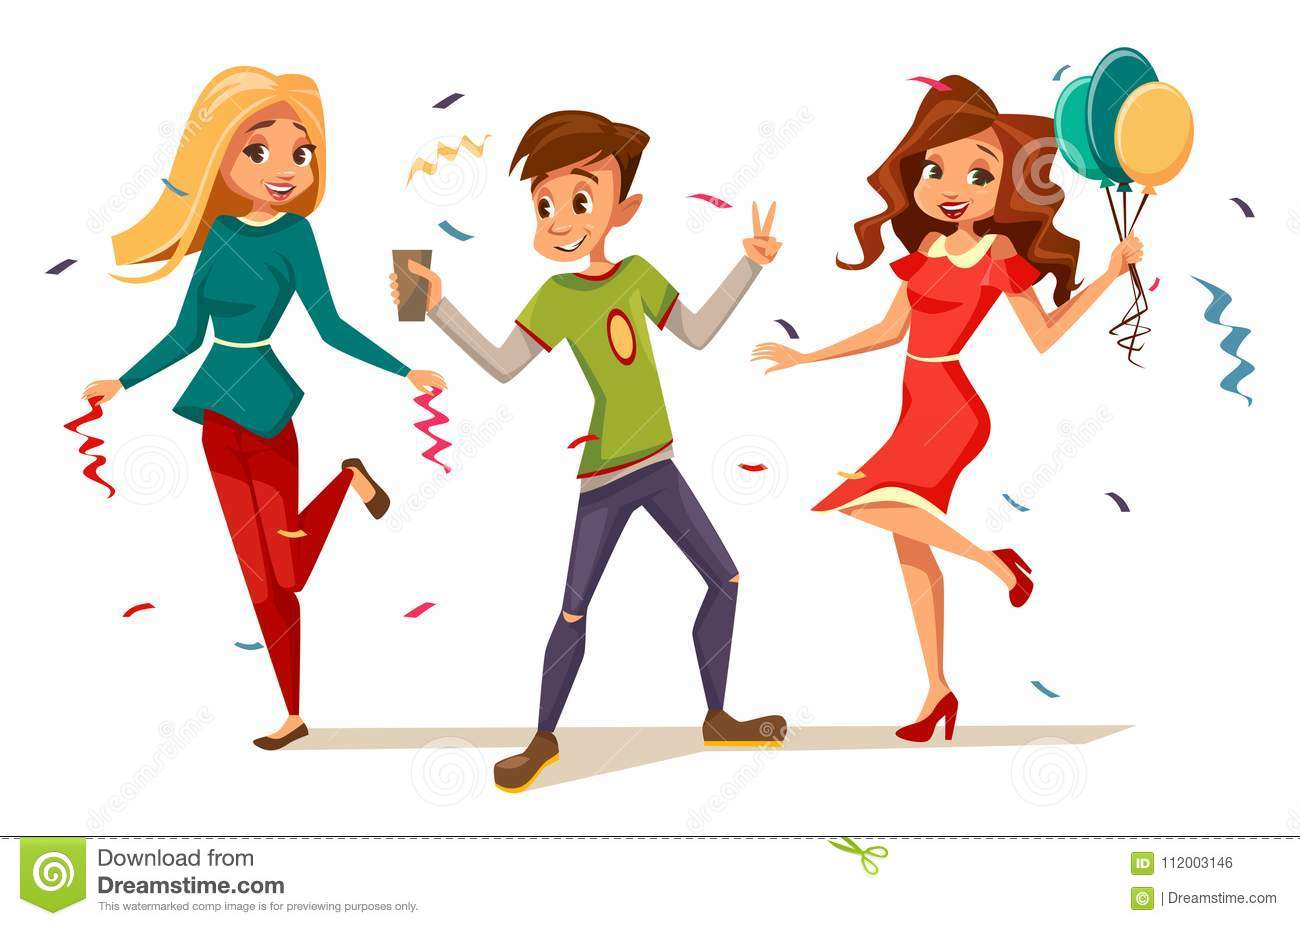 be64fbcac Young teens dancing at party vector illustration of cartoon boys and girls  kids characters celebrating birthday